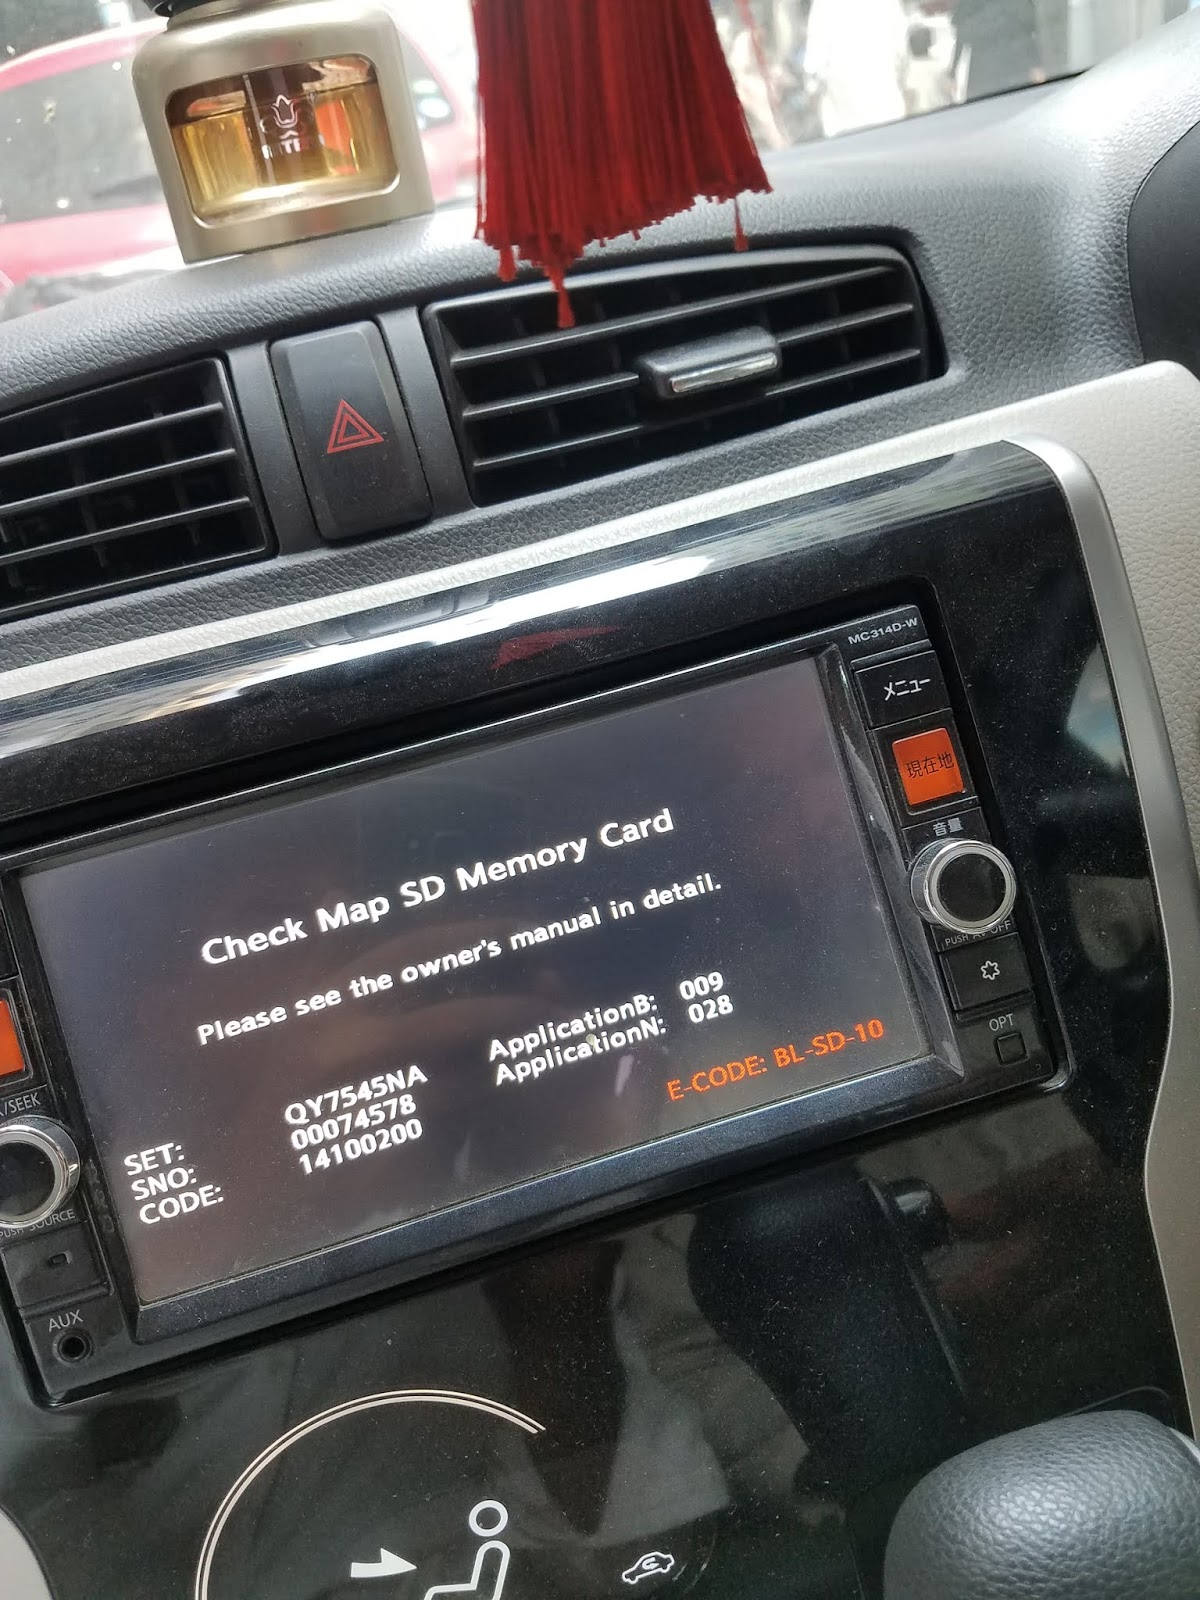 check map sd memory card: NISSAN CLARION